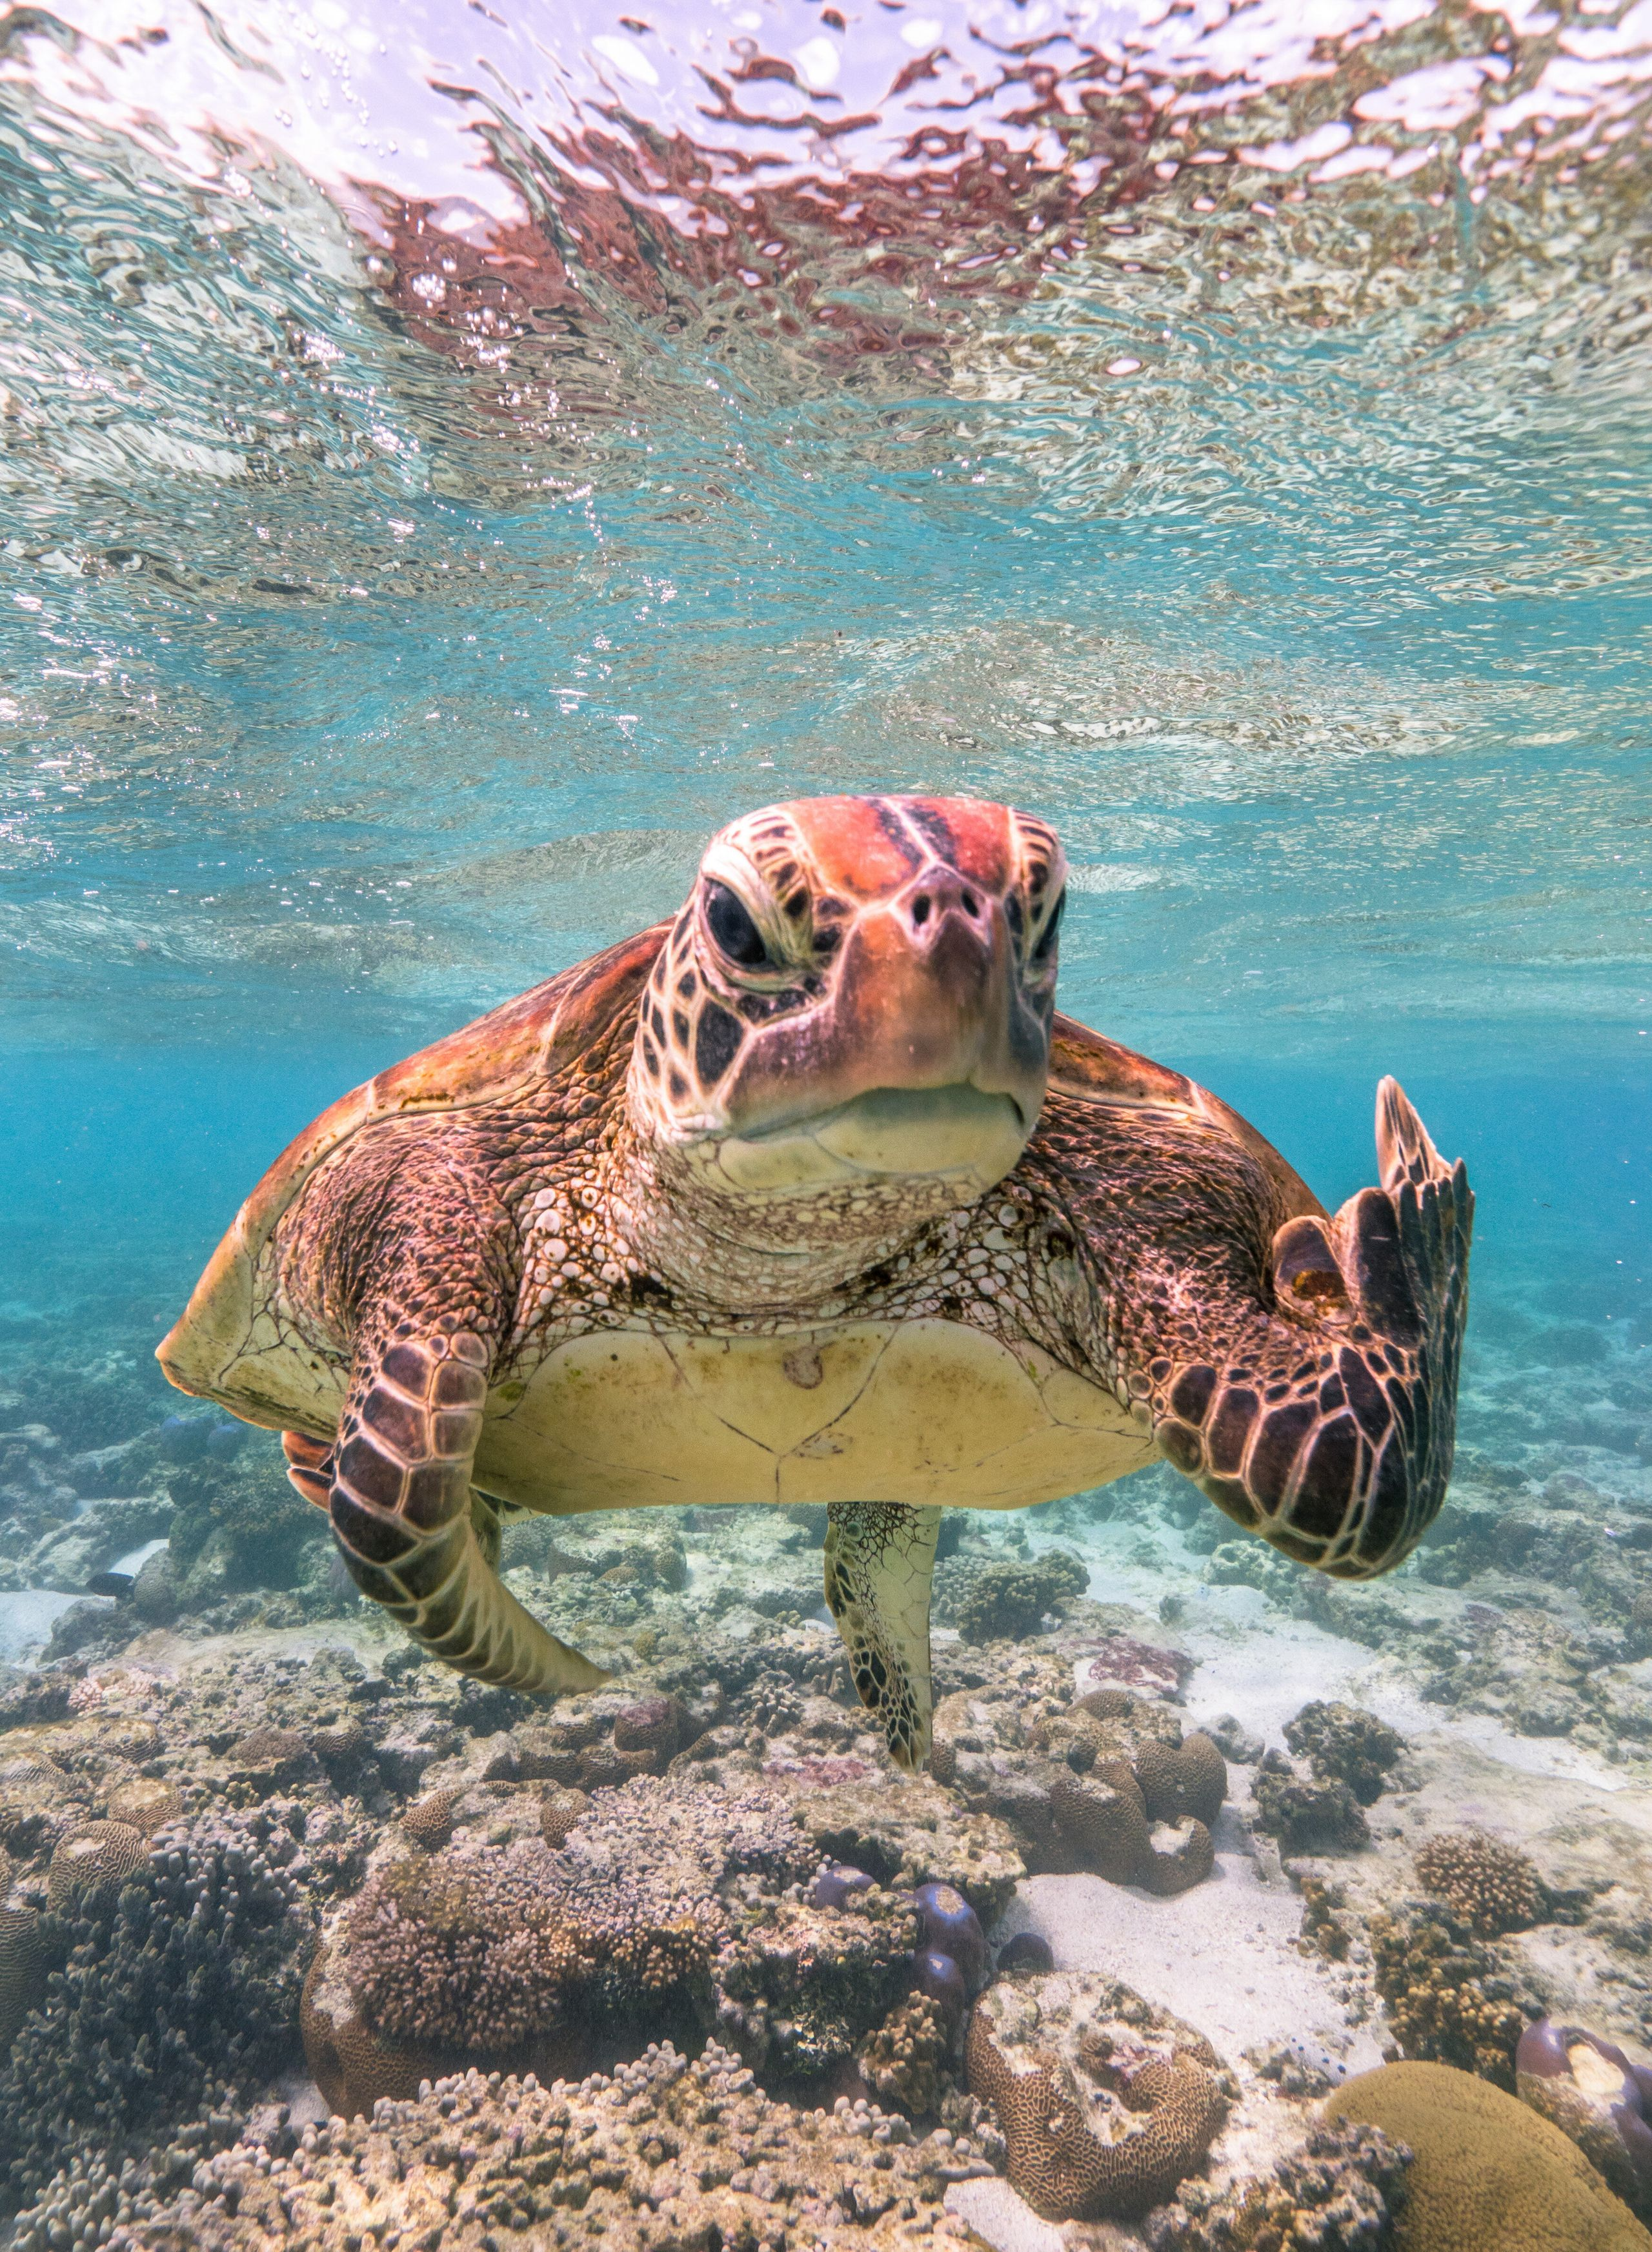 """Terry the Turtle Flipping the Bird"" was taken in Lady Elliot Island in Queensland, Australia."